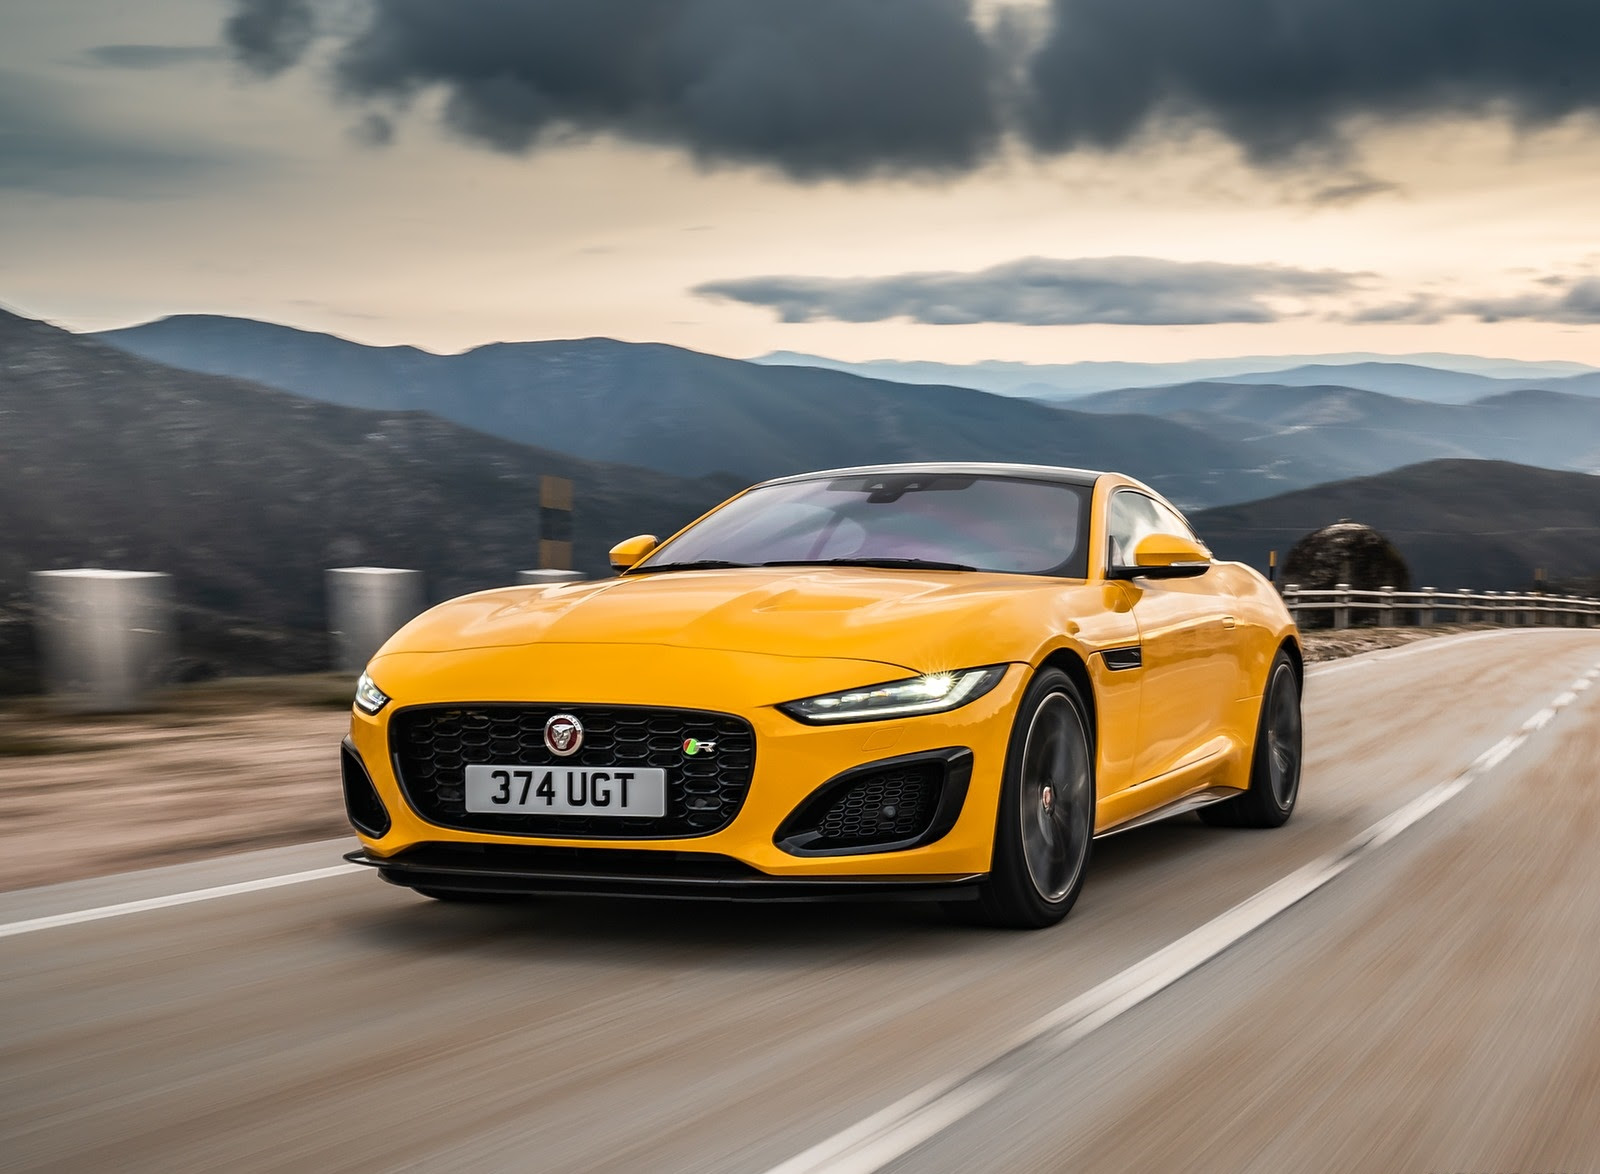 2021 Jaguar F Type R Wallpapers 81 Hd Images Newcarcars